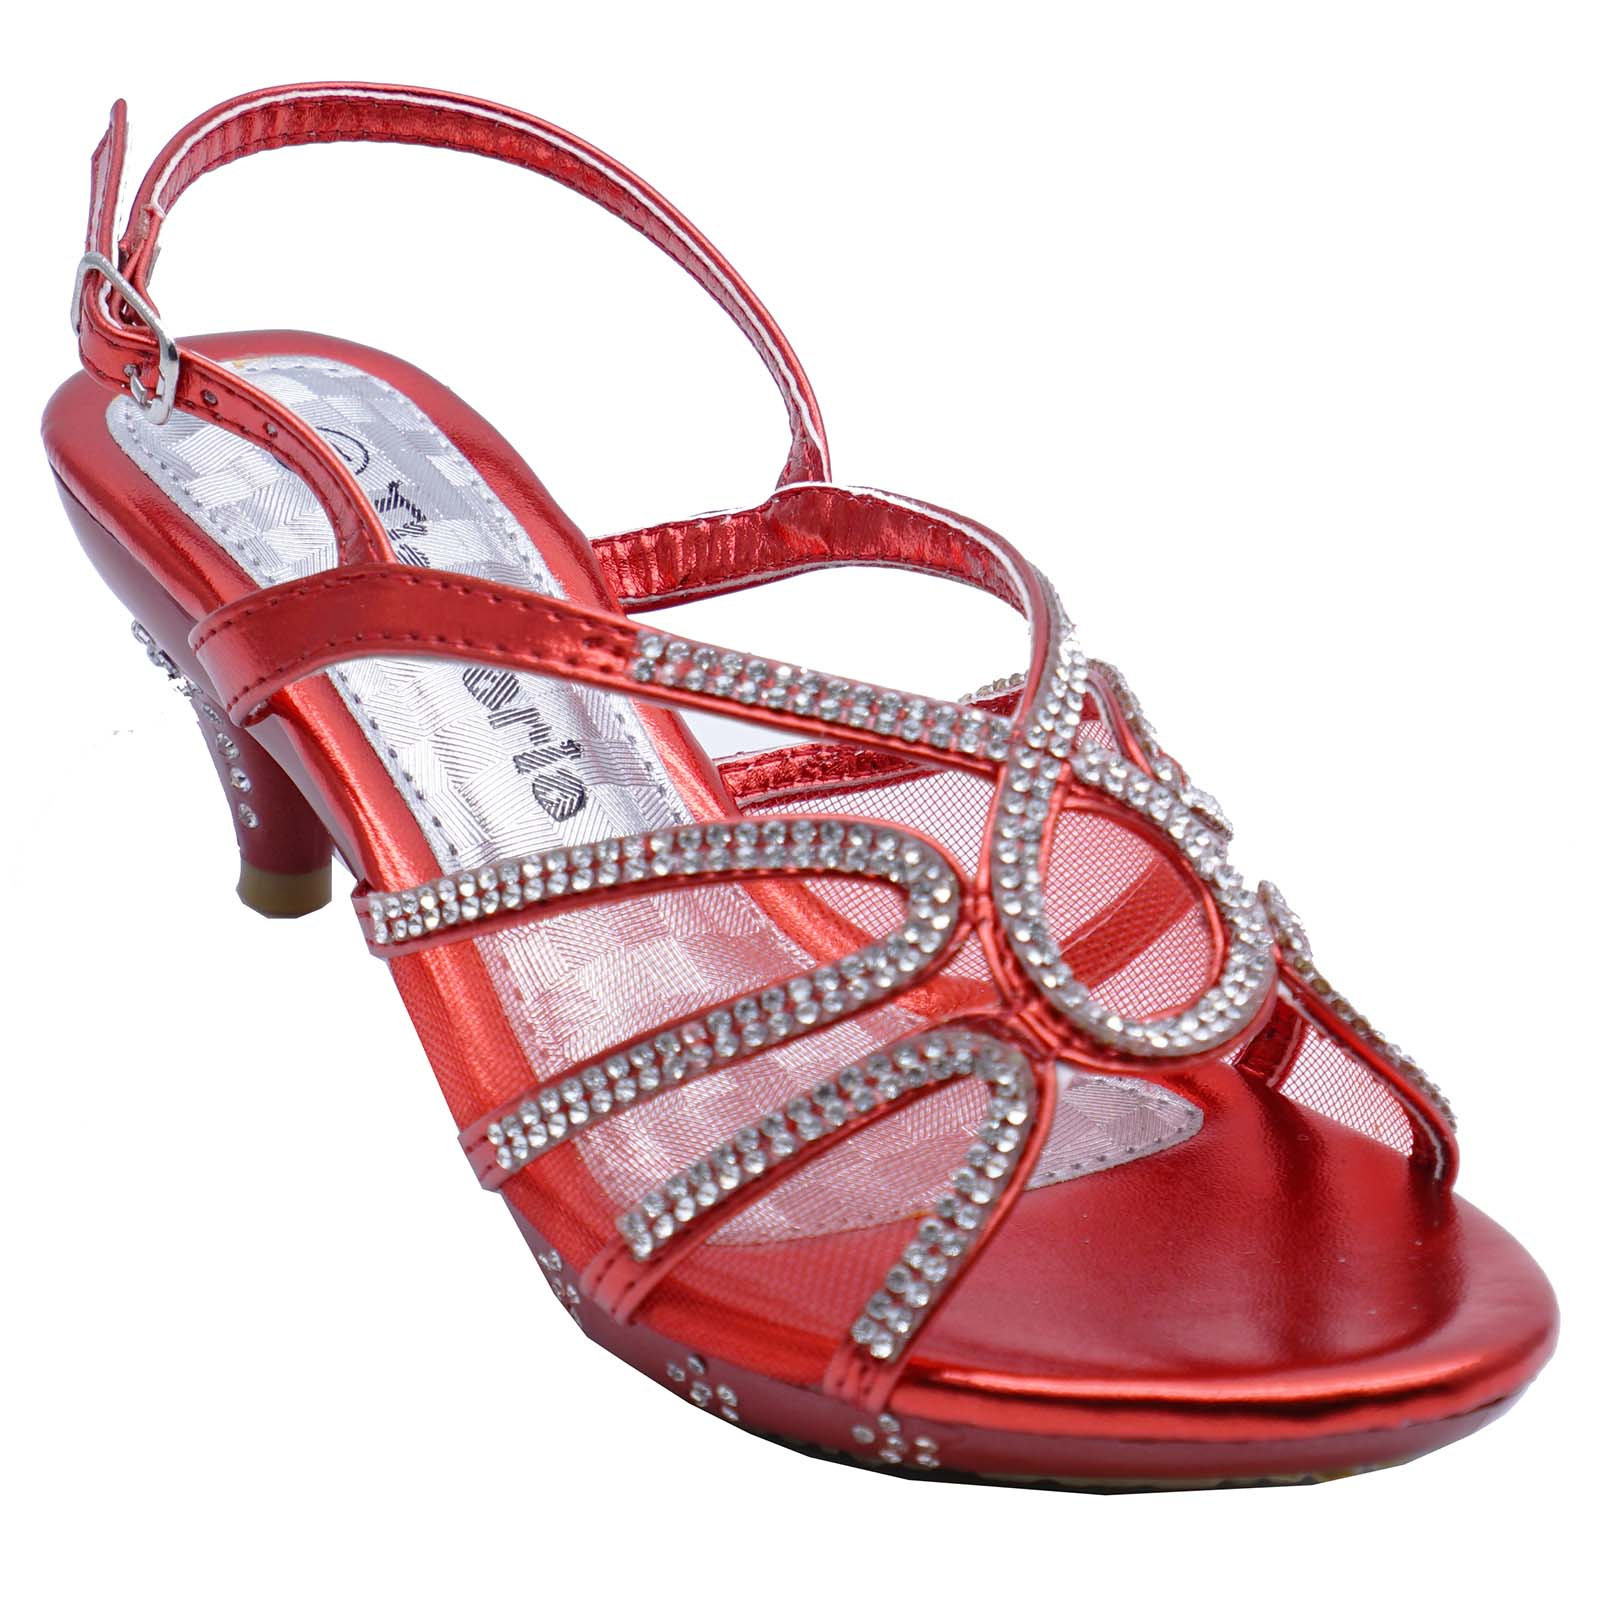 GIRLS CHILDRENS RED DRESS-UP DIAMANTE LOW-HEEL SANDALS PARTY SHOES SIZES 10-2